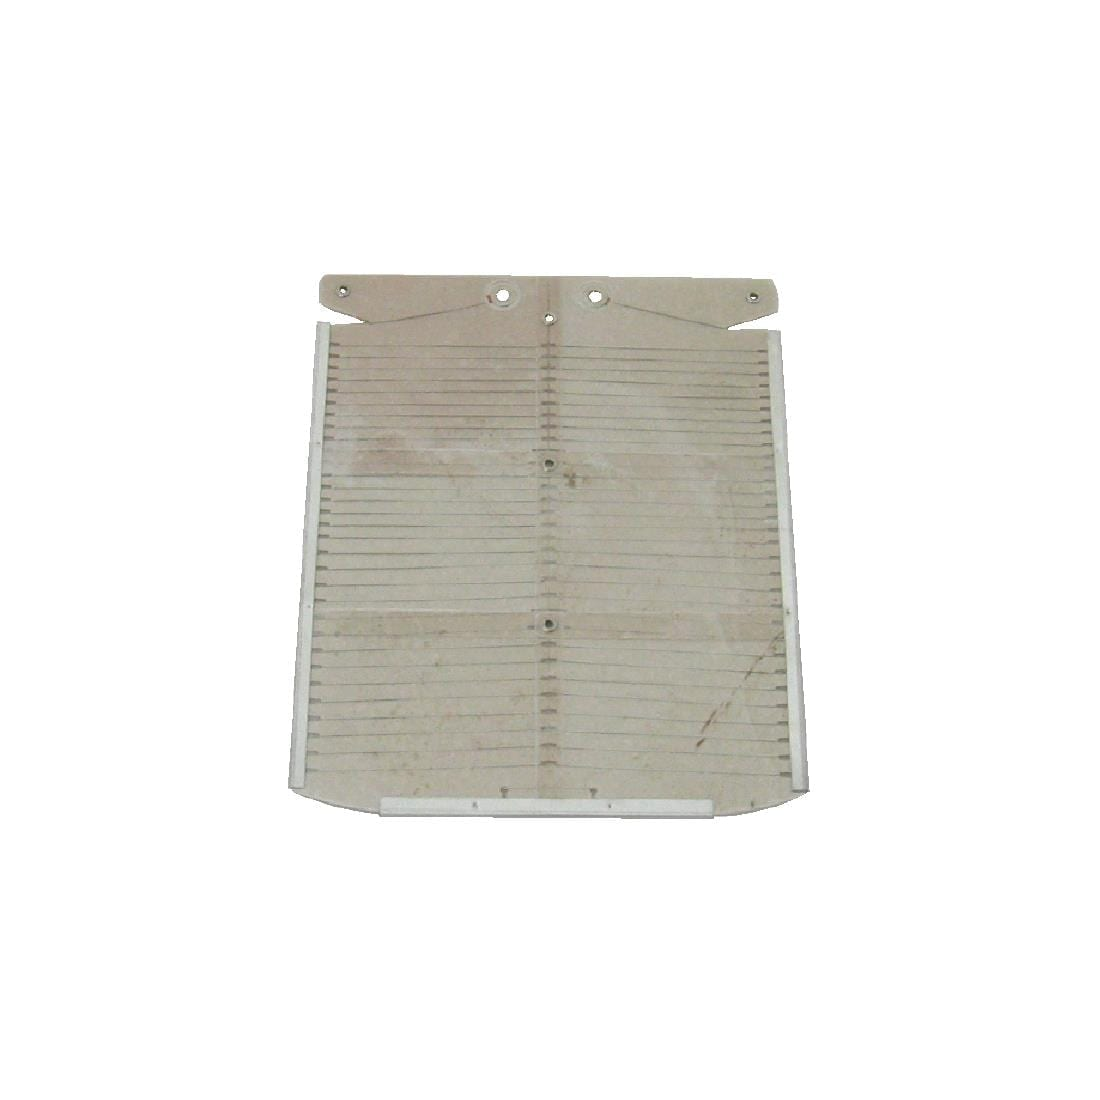 Dualit ProHeat End Element for 6 Slot Toaster